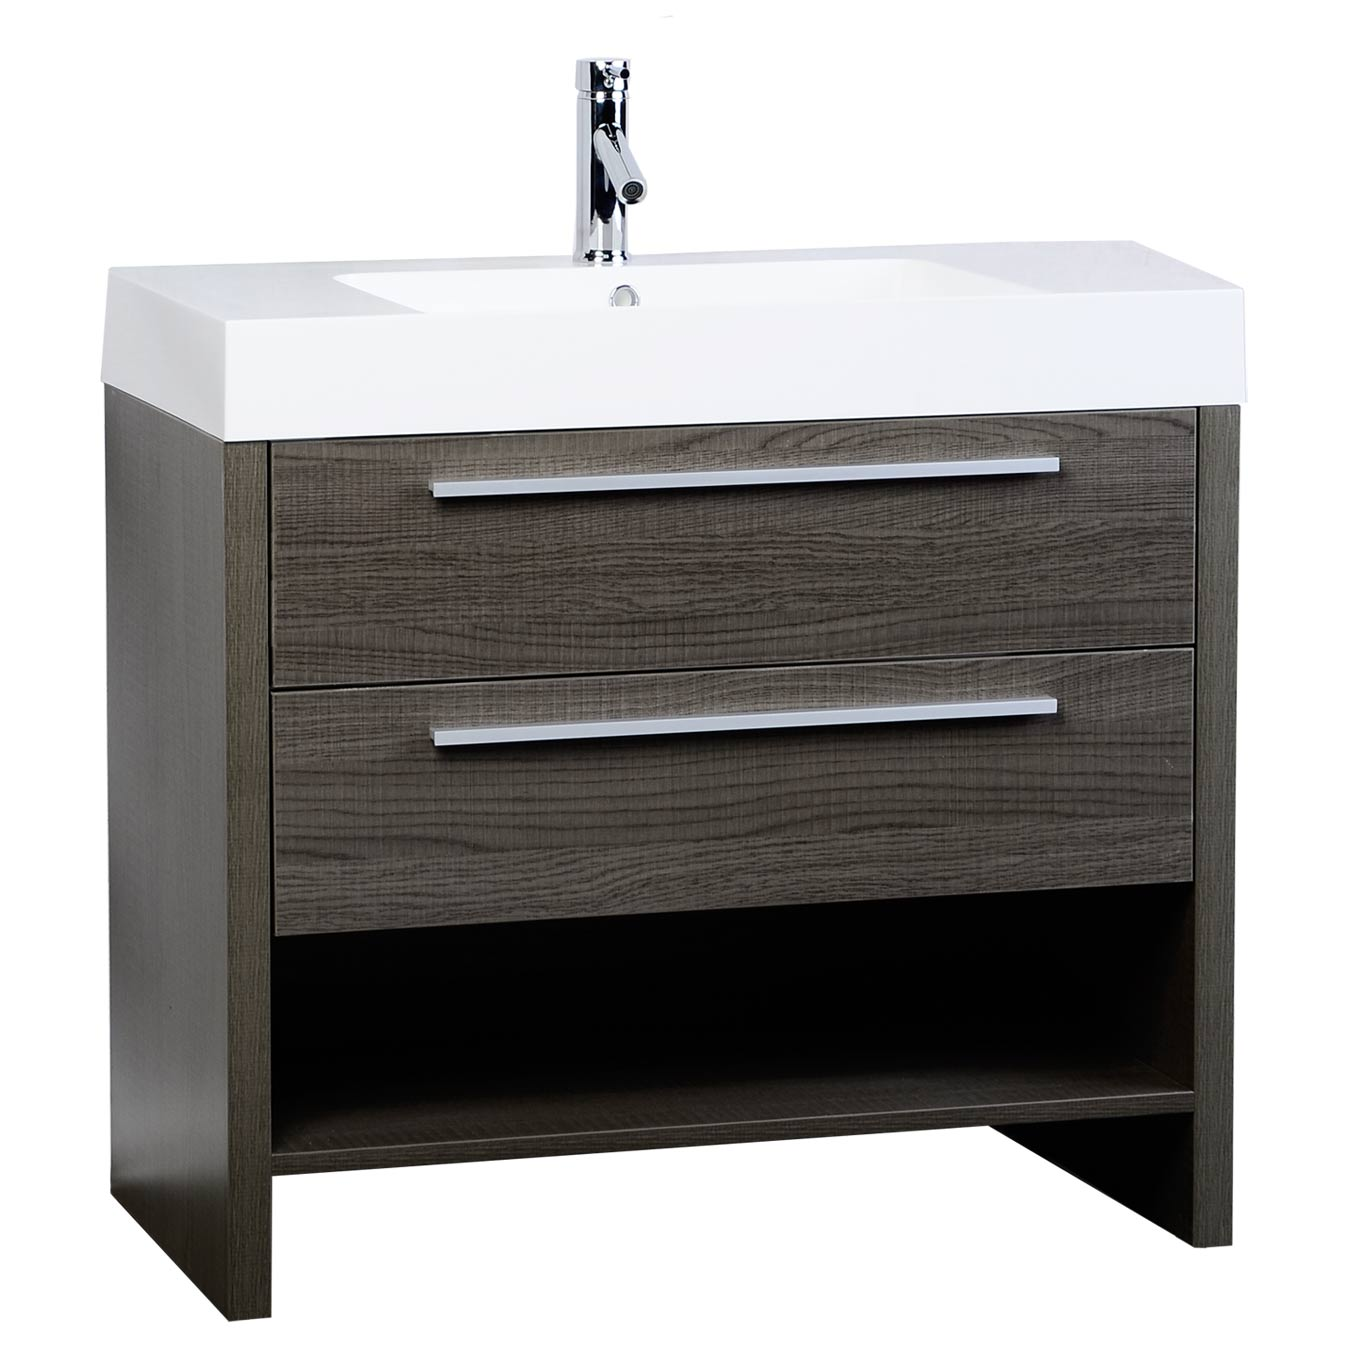 Mula 35 5 modern bathroom vanity oak rs l900 oak on for Bathroom cabinets modern